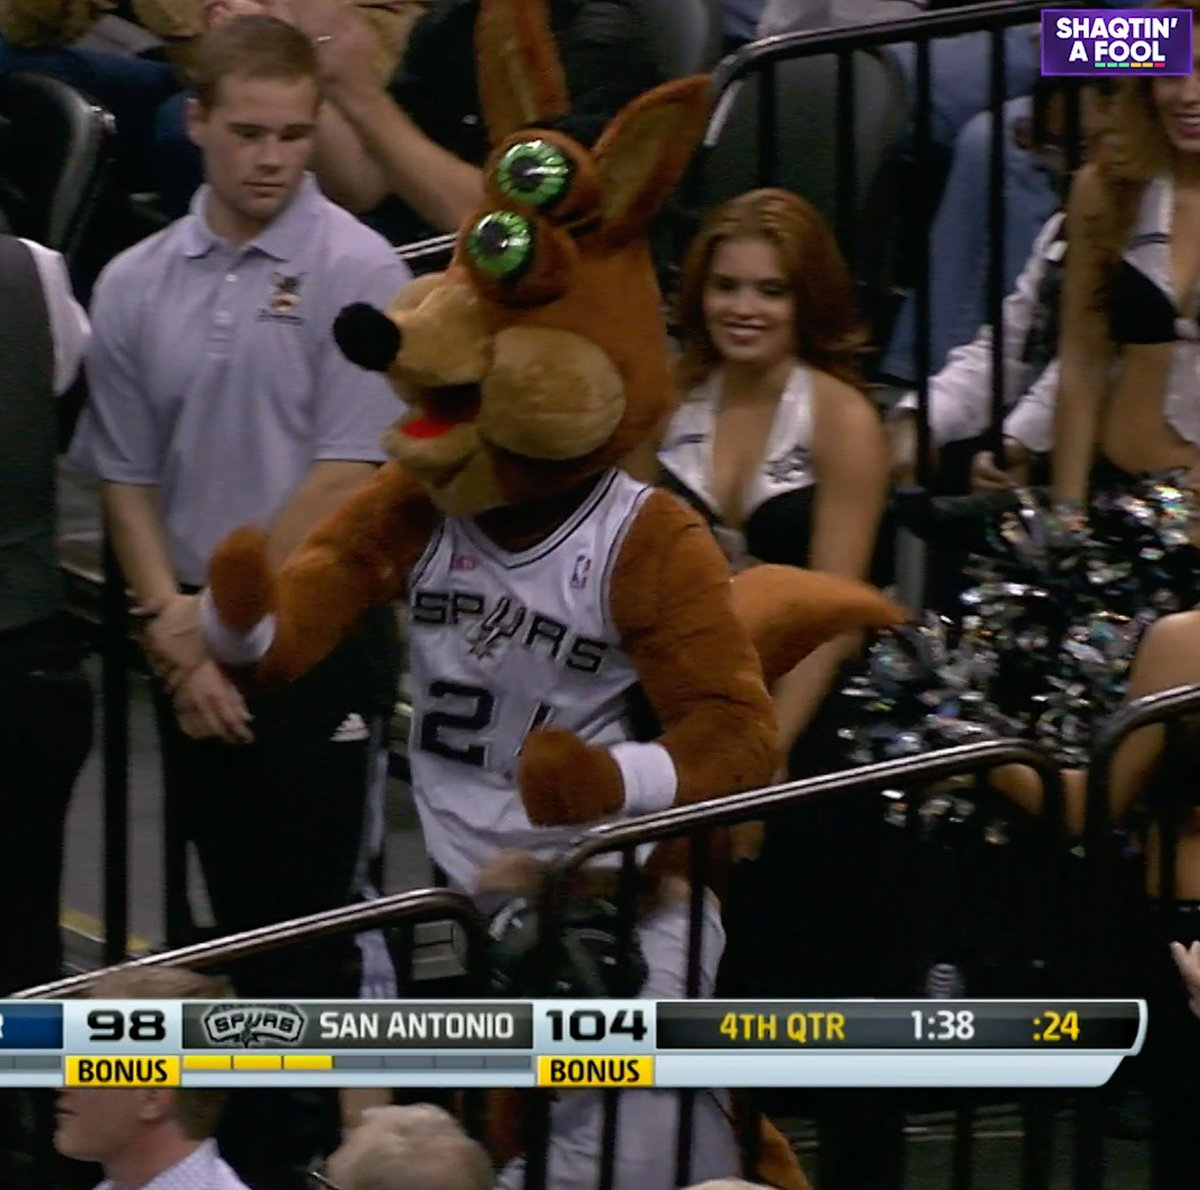 #OTD in 2014, the @SpursCoyote took a charge and lost his eyes. 👀🤣  #Shaqtin